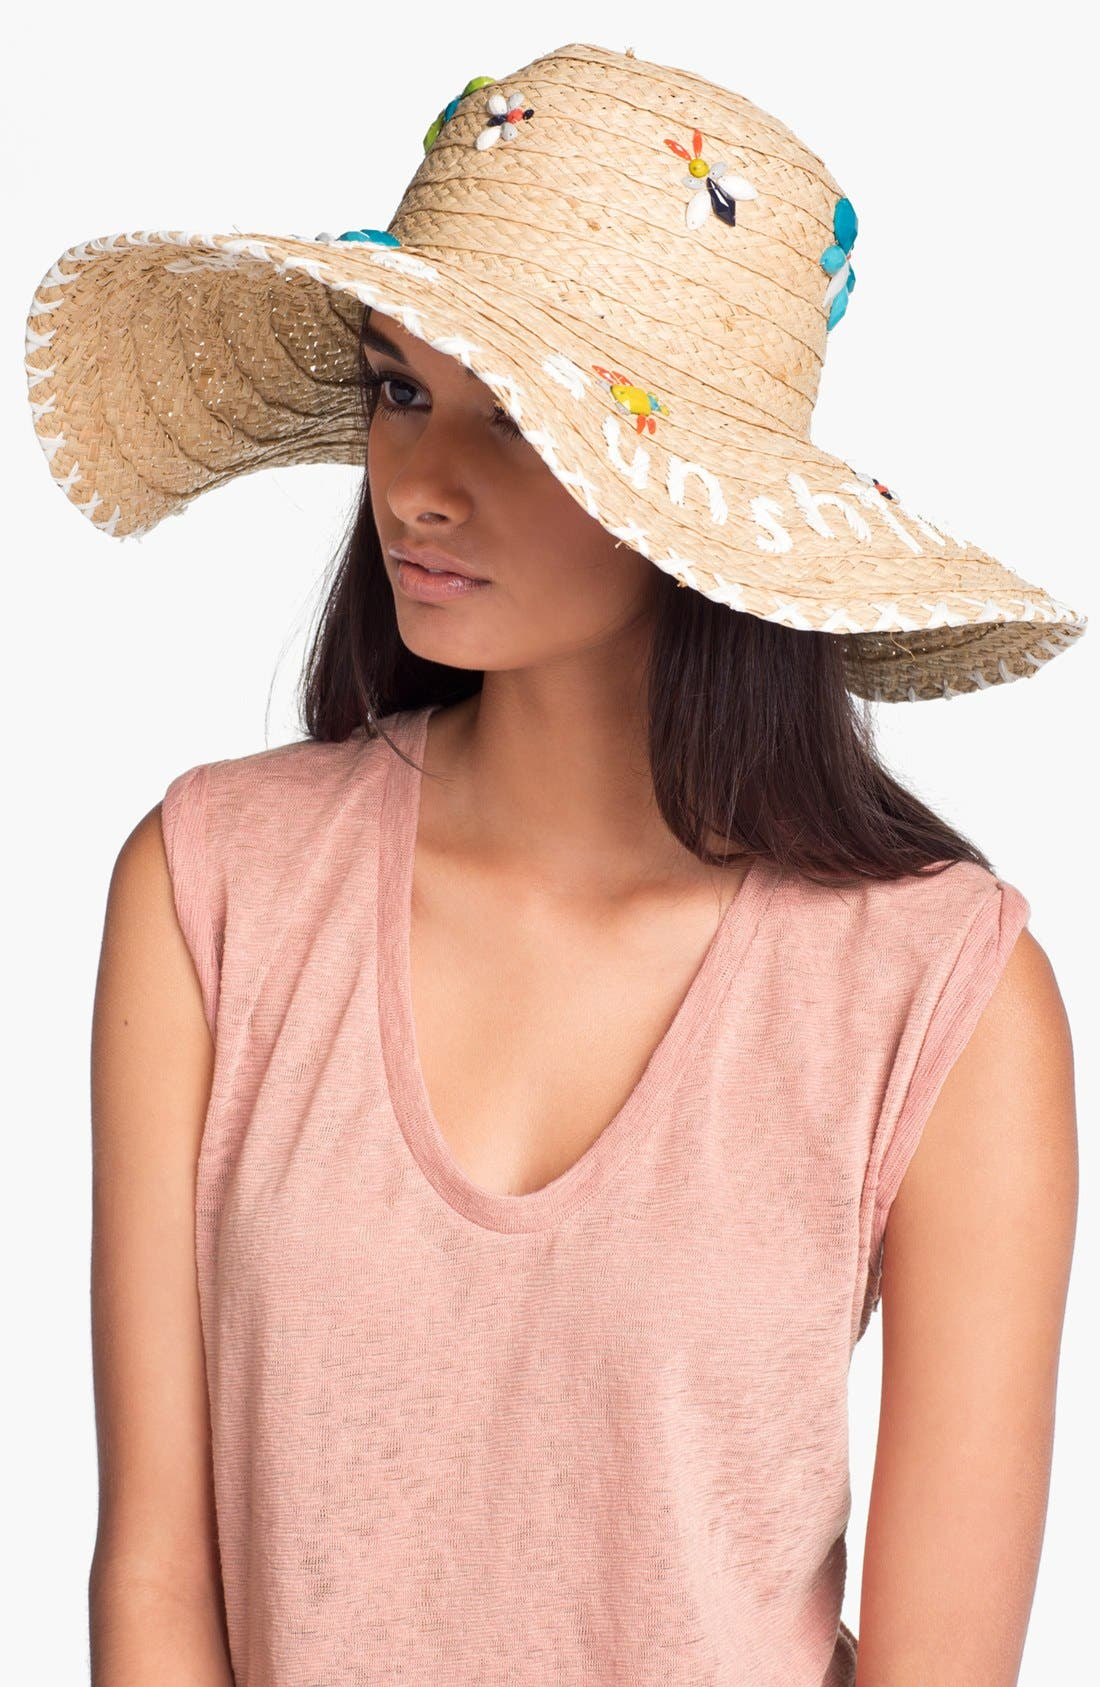 Alternate Image 1 Selected - kate spade new york 'hello sunshine' raffia sun hat